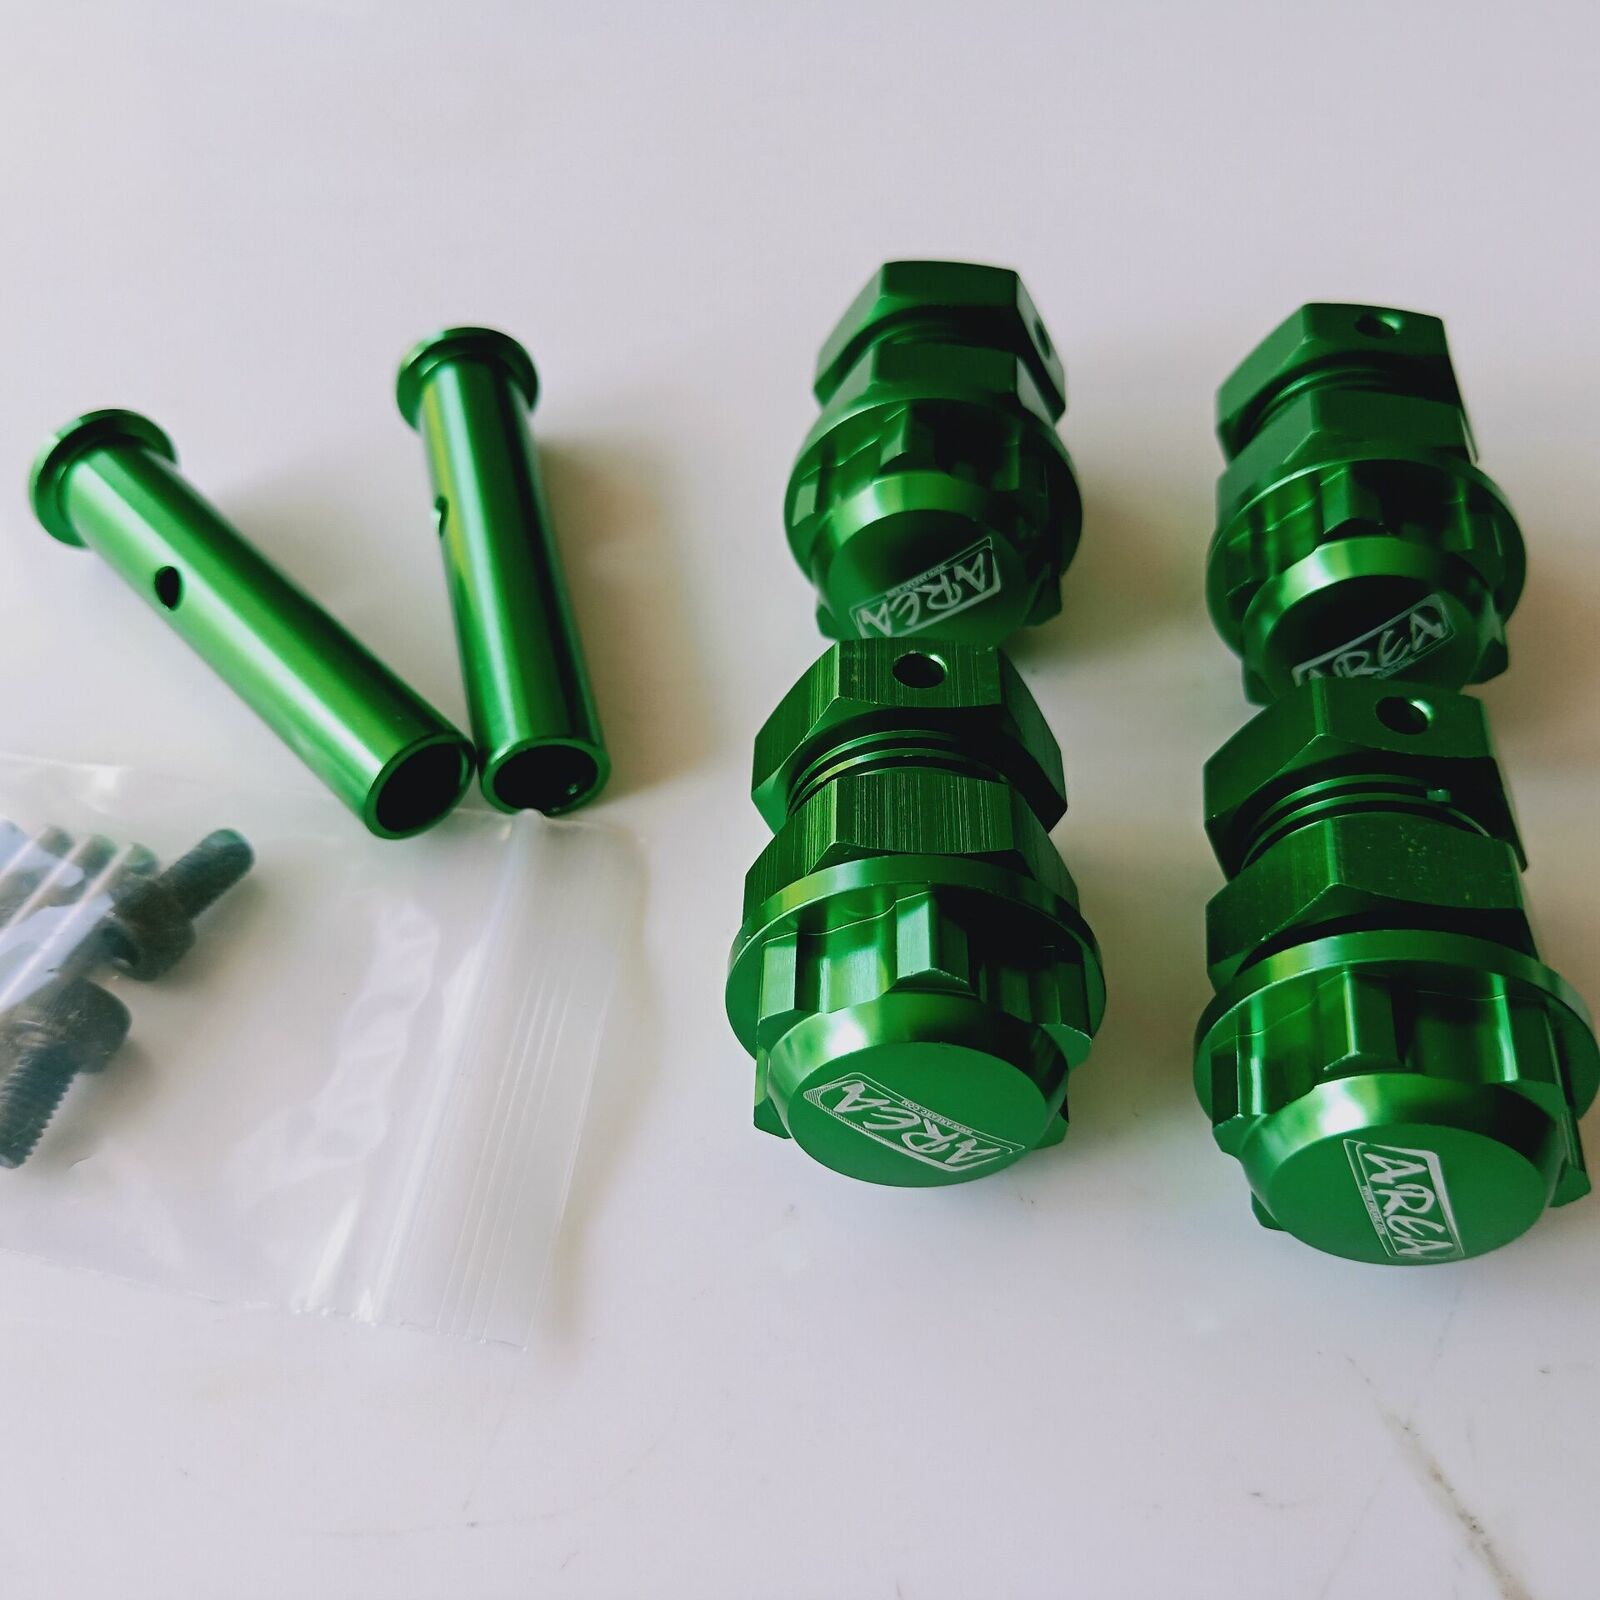 Area RC FOR baja 5B 5T 5T 5T 5SC Wheel Extenders and nut d63bd4